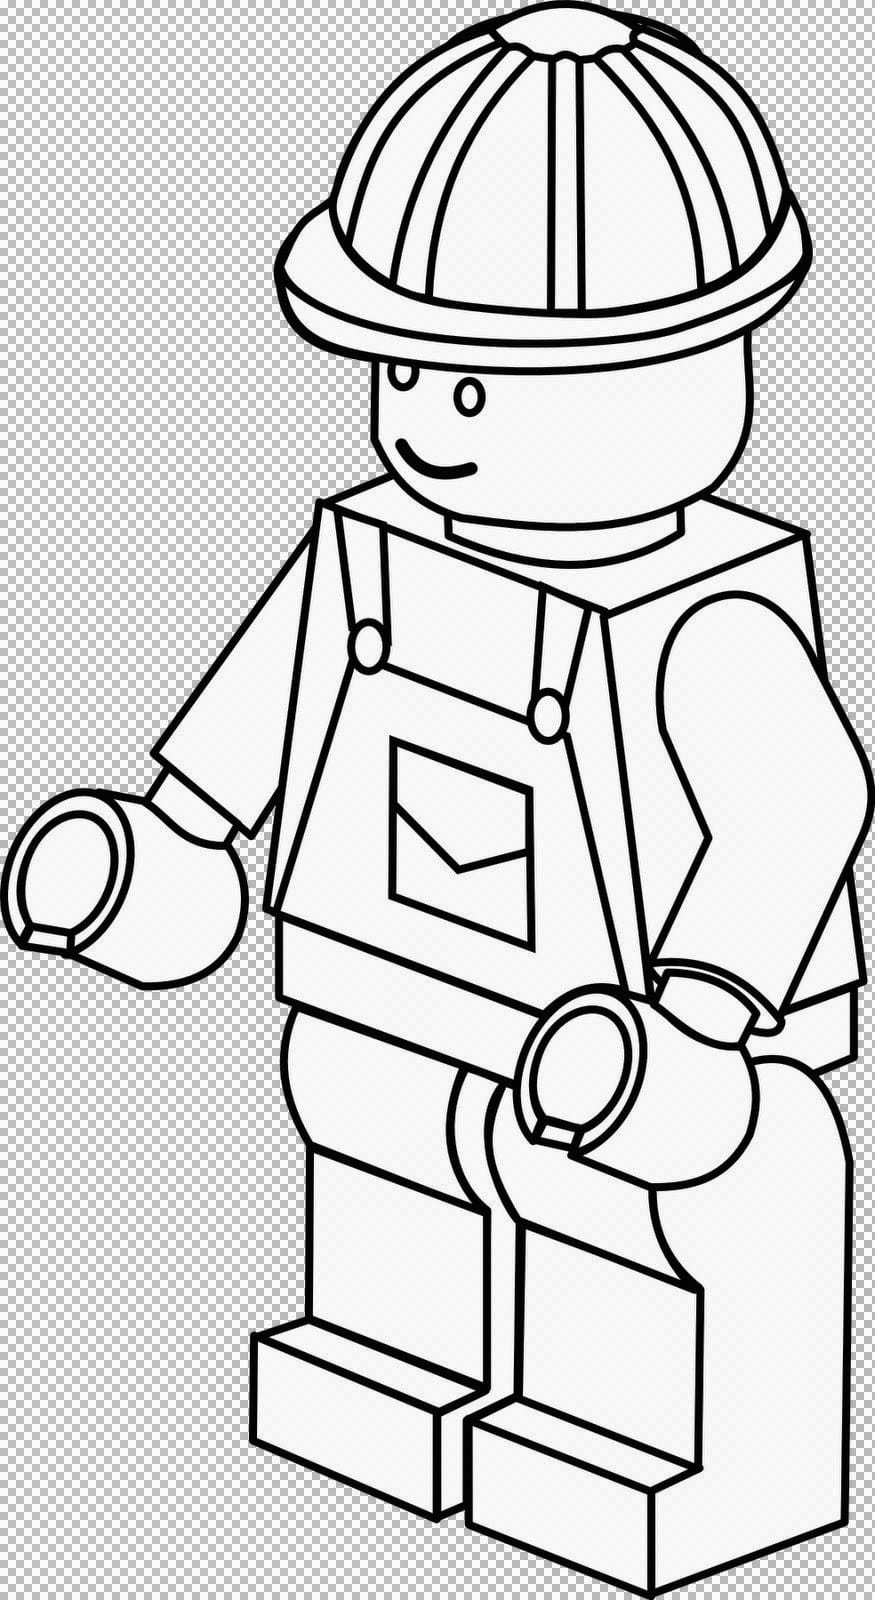 coloring pictures lego create your own lego coloring pages for kids lego pictures coloring